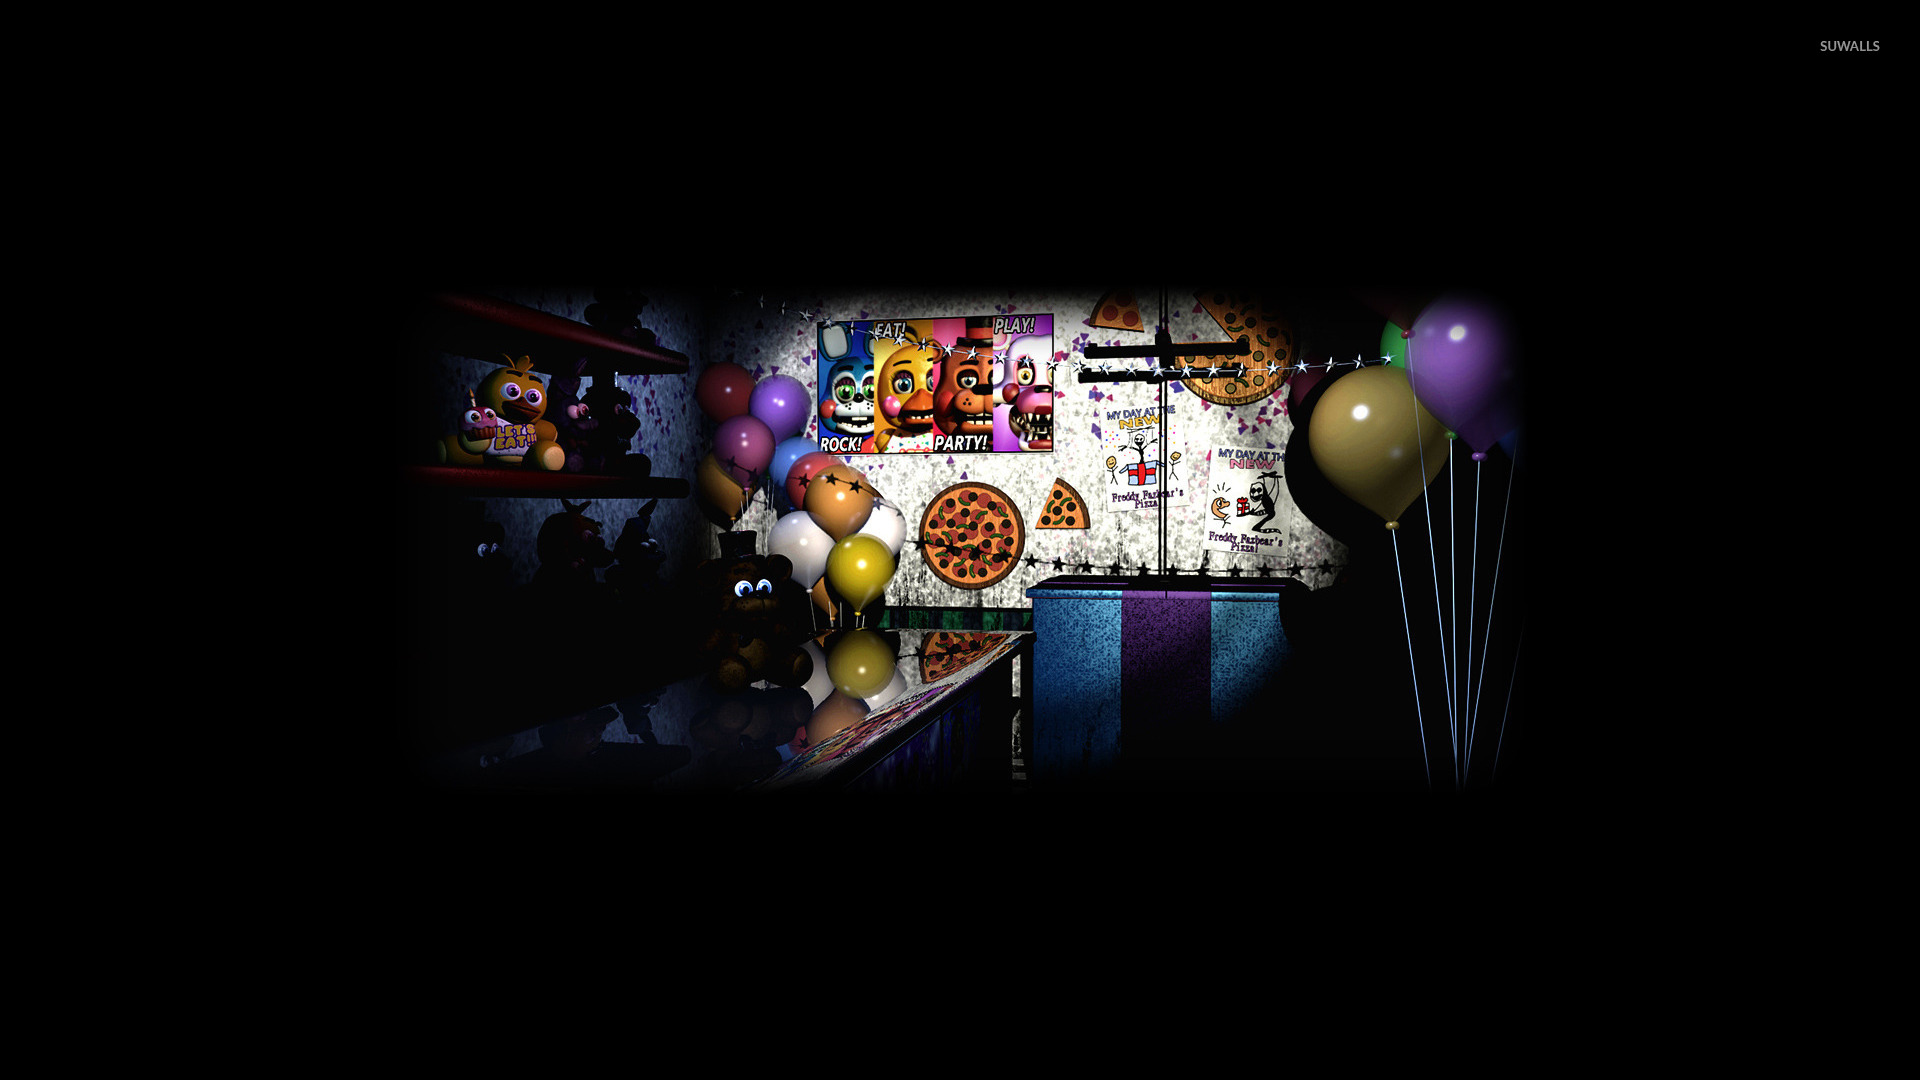 Five nights at freddy s 4 wallpaper game wallpapers 35873